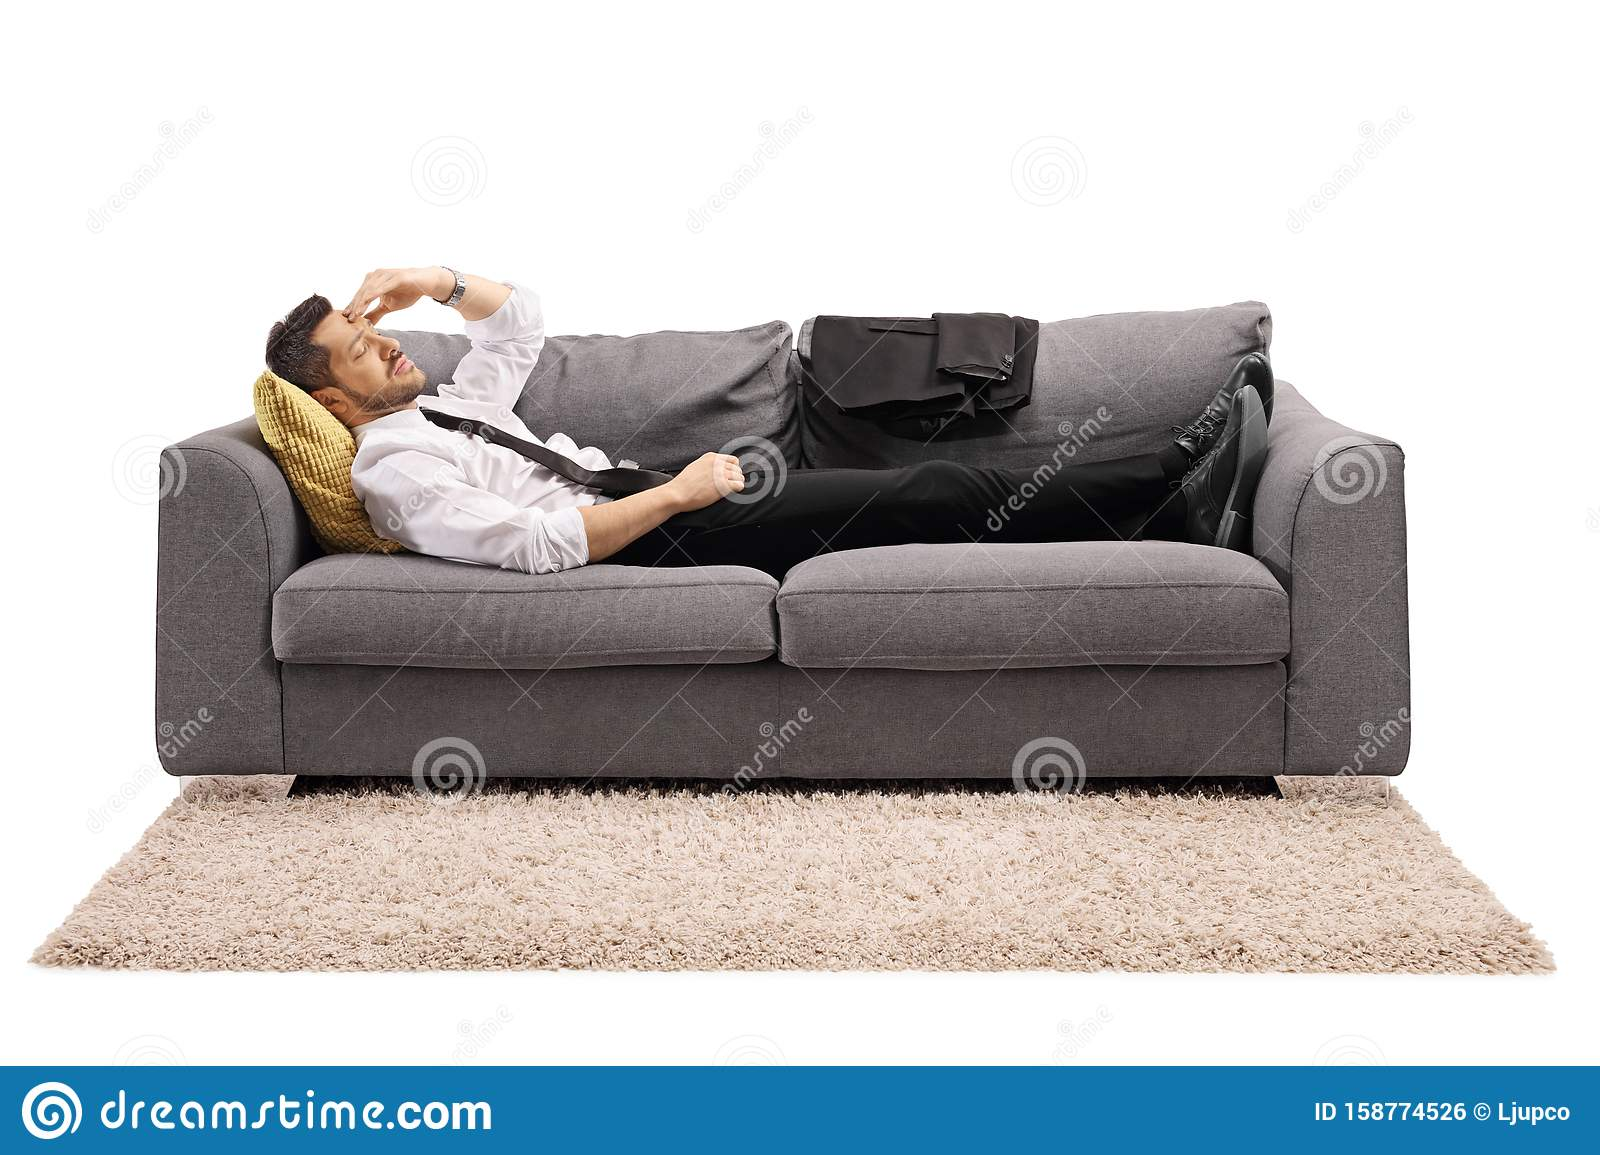 Picture of: Businessman Resting On A Sofa Bed After Work Stock Photo Image Of Male Head 158774526